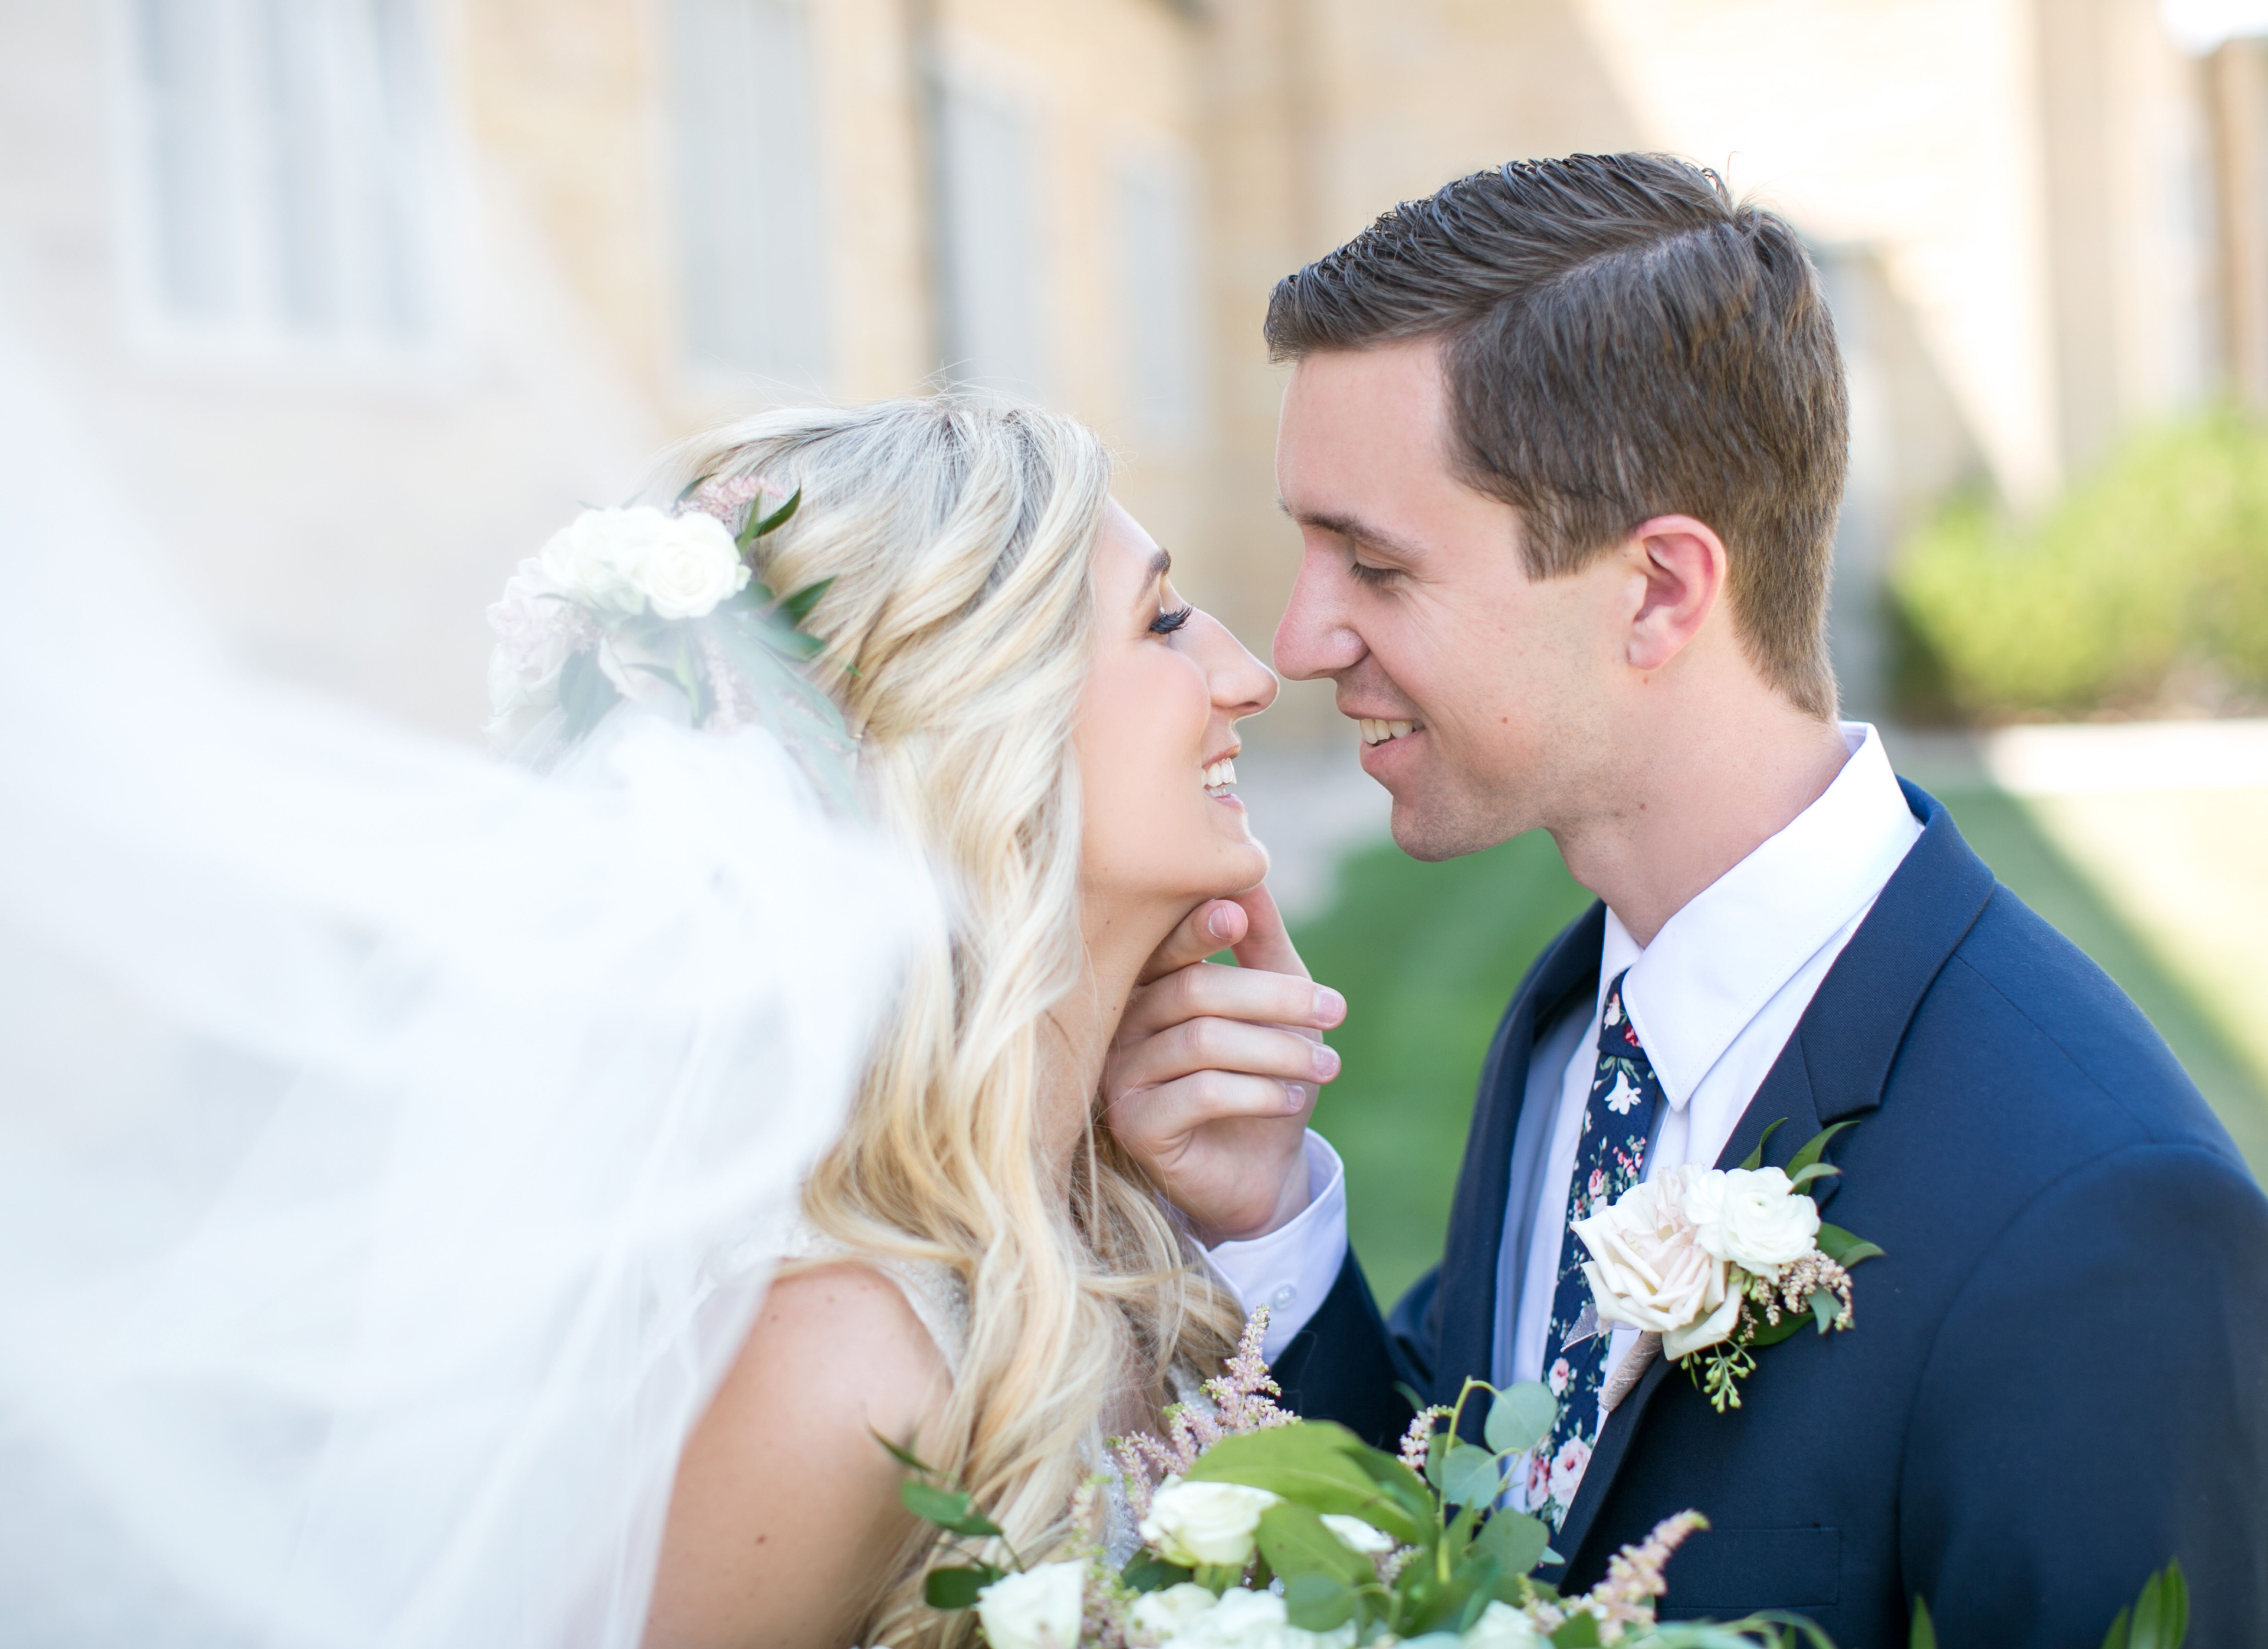 Wedding Photographers in Rapid City, SD - The Knot